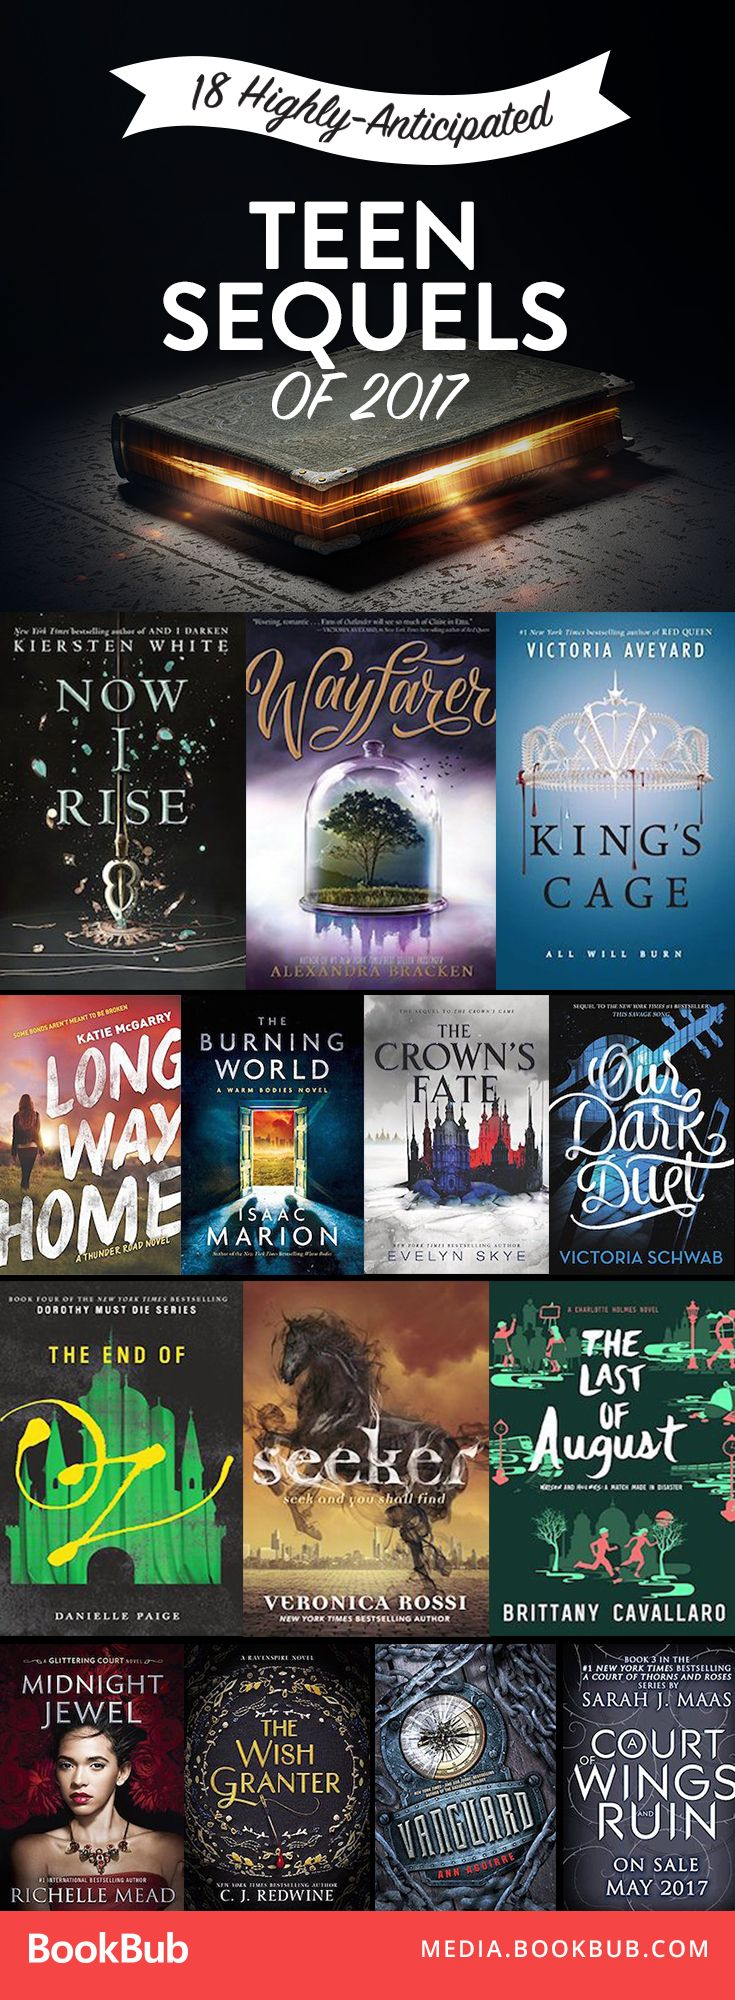 18 Highly Anticipated Teen Sequels Coming In 2017 Books For Teens